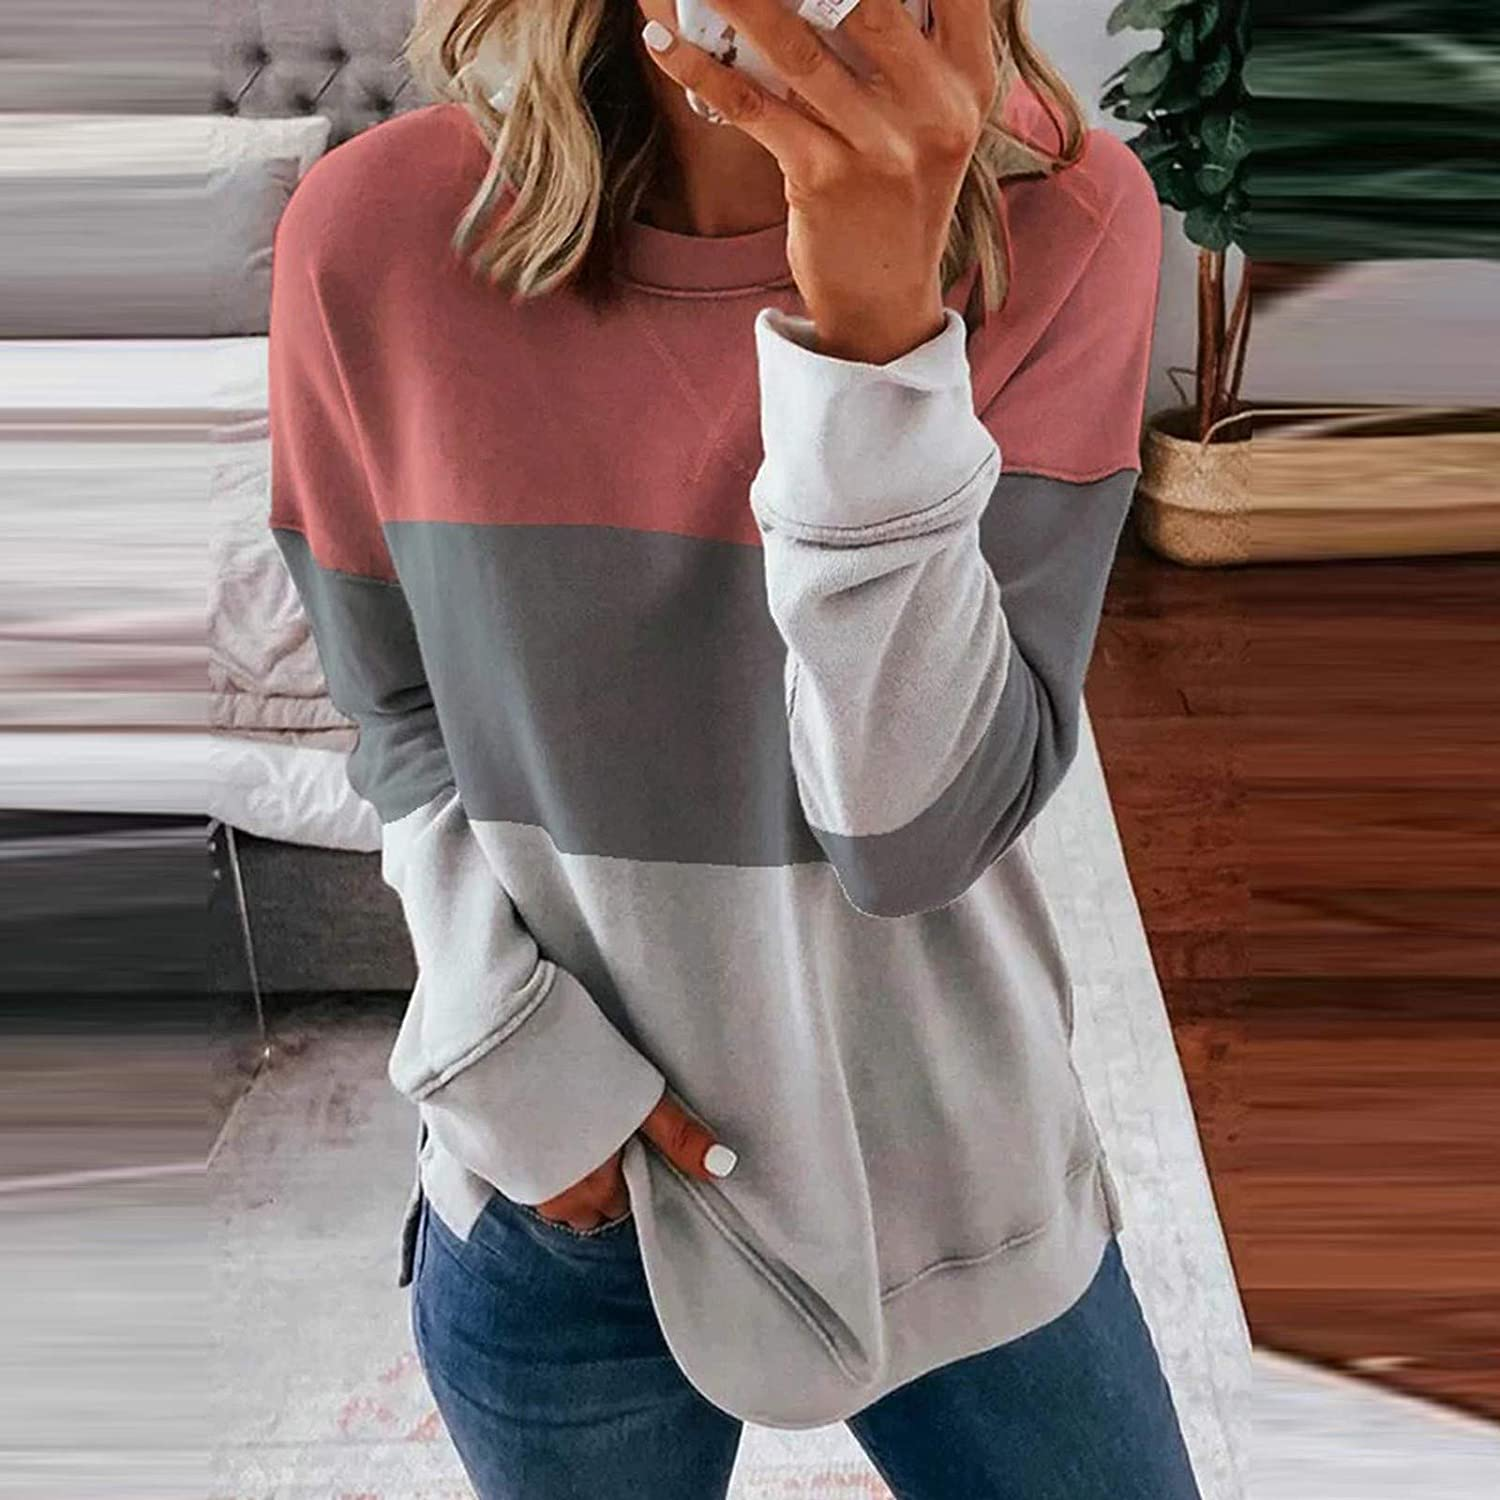 Long Sleeve Shirts for Women,Women's Casual Tie Dye Striped Round Neck Loose Pullover Sweatshirt Tops Pink